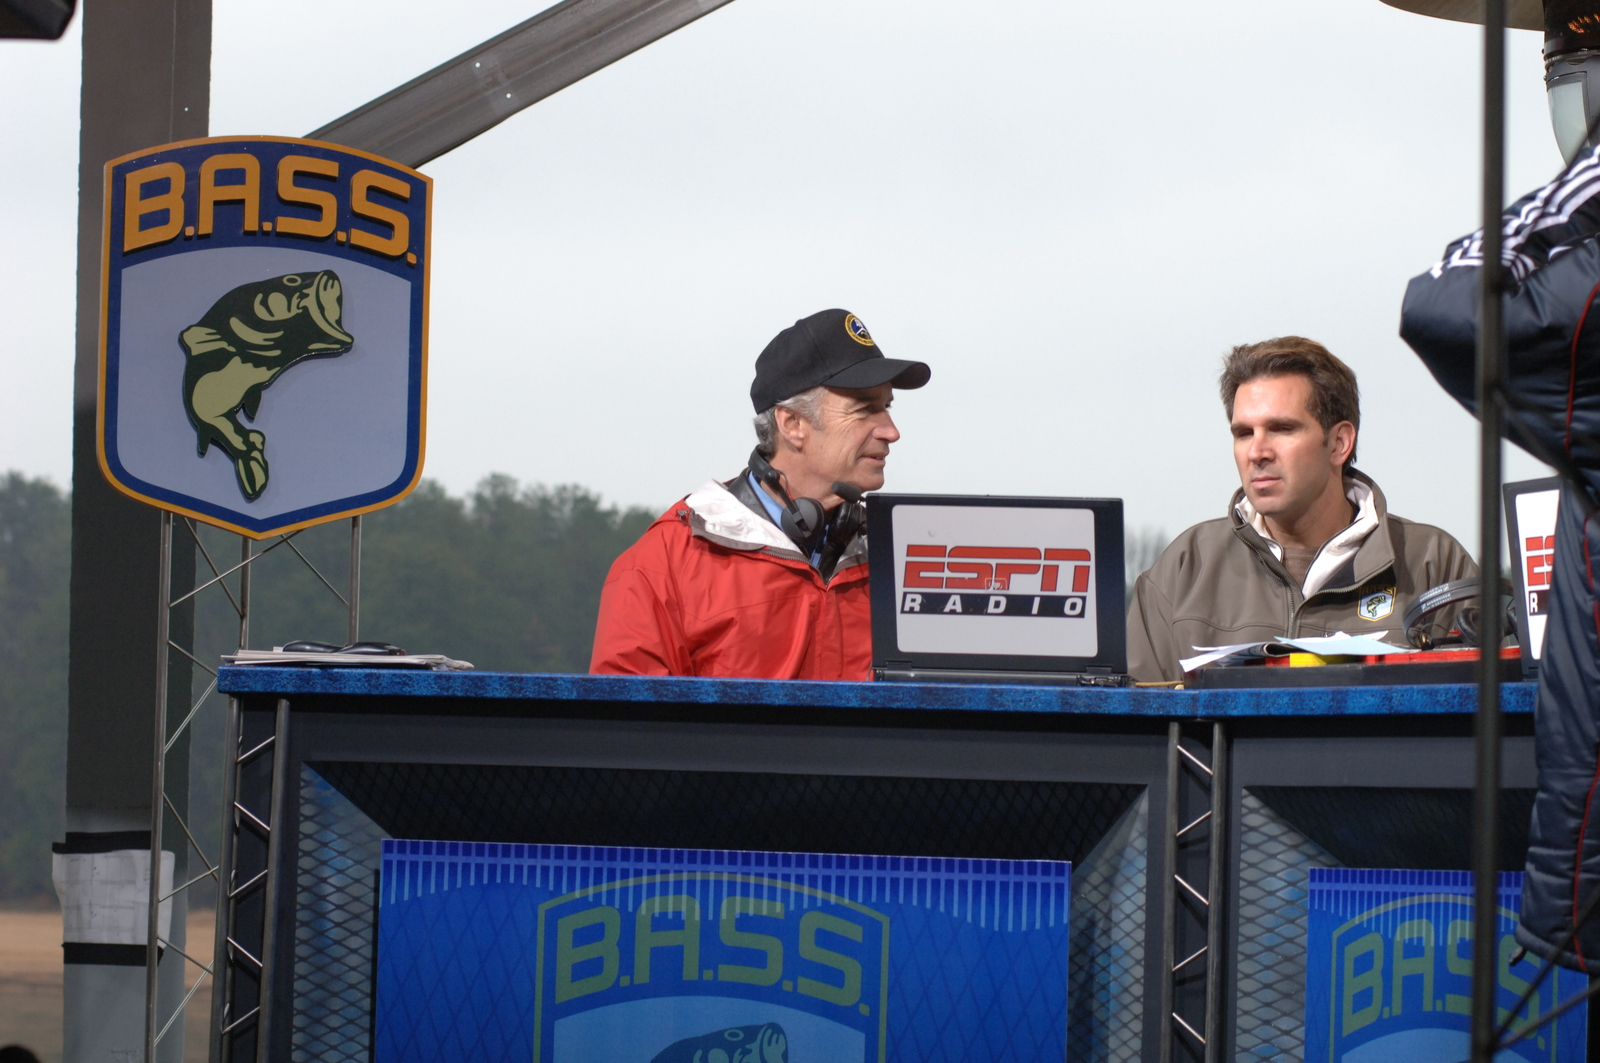 [Assignment: 48-DPA-02_21_08_SIO_K_SC_Bass_Mike] Segment of ESPN Radio's Mike and Mike Show, [co-hosted by Mike Greenberg and Mike Golic,] at the Bassmasters Classic professional fishing tournament, Greenville, South Carolina, [with guest appearance by] Secretary Dirk Kempthorne [48-DPA-02_21_08_SIO_K_SC_Bass_Mike_DOI_0360.JPG]